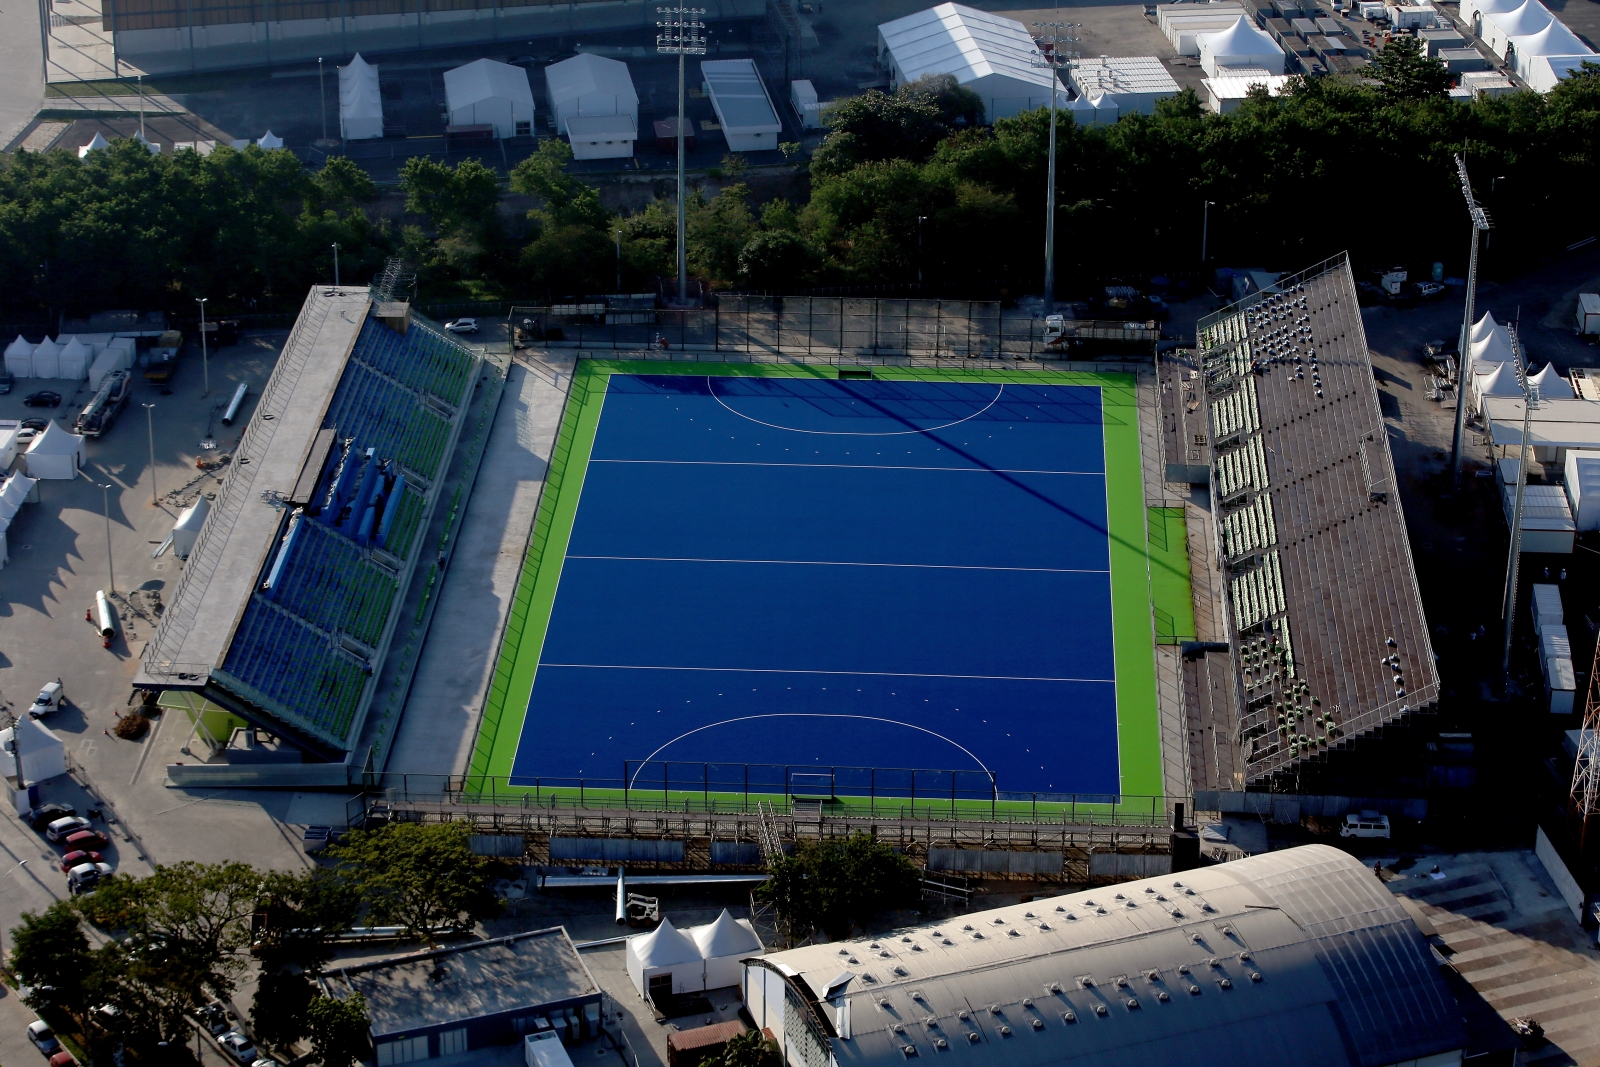 Rio Olympic Hockey Centre